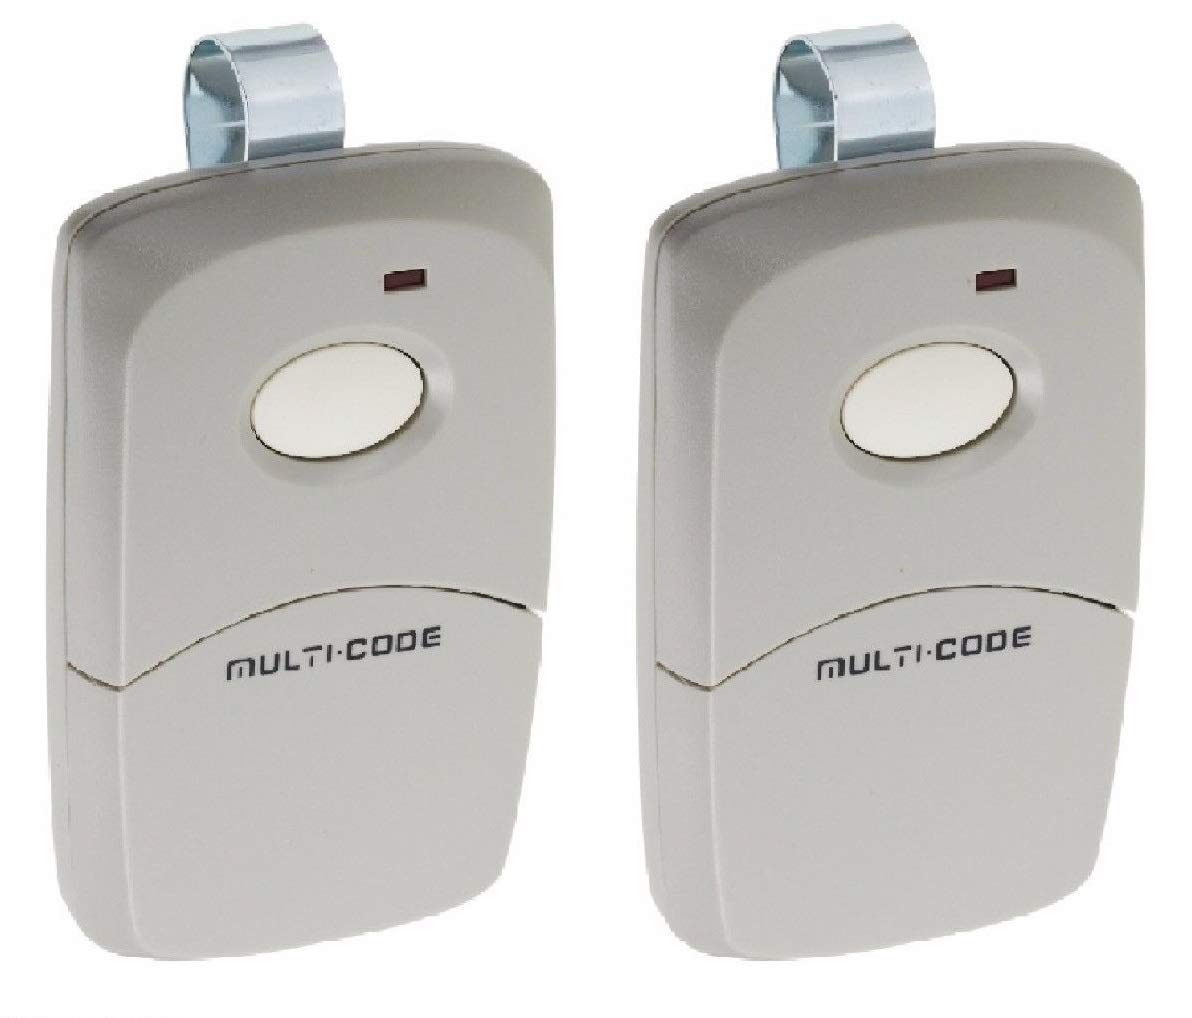 2-Pack Multi-Code 3089 MultiCode 308911 Linear MCS308911 Garage Gate Remote 300m by Linear (Image #1)